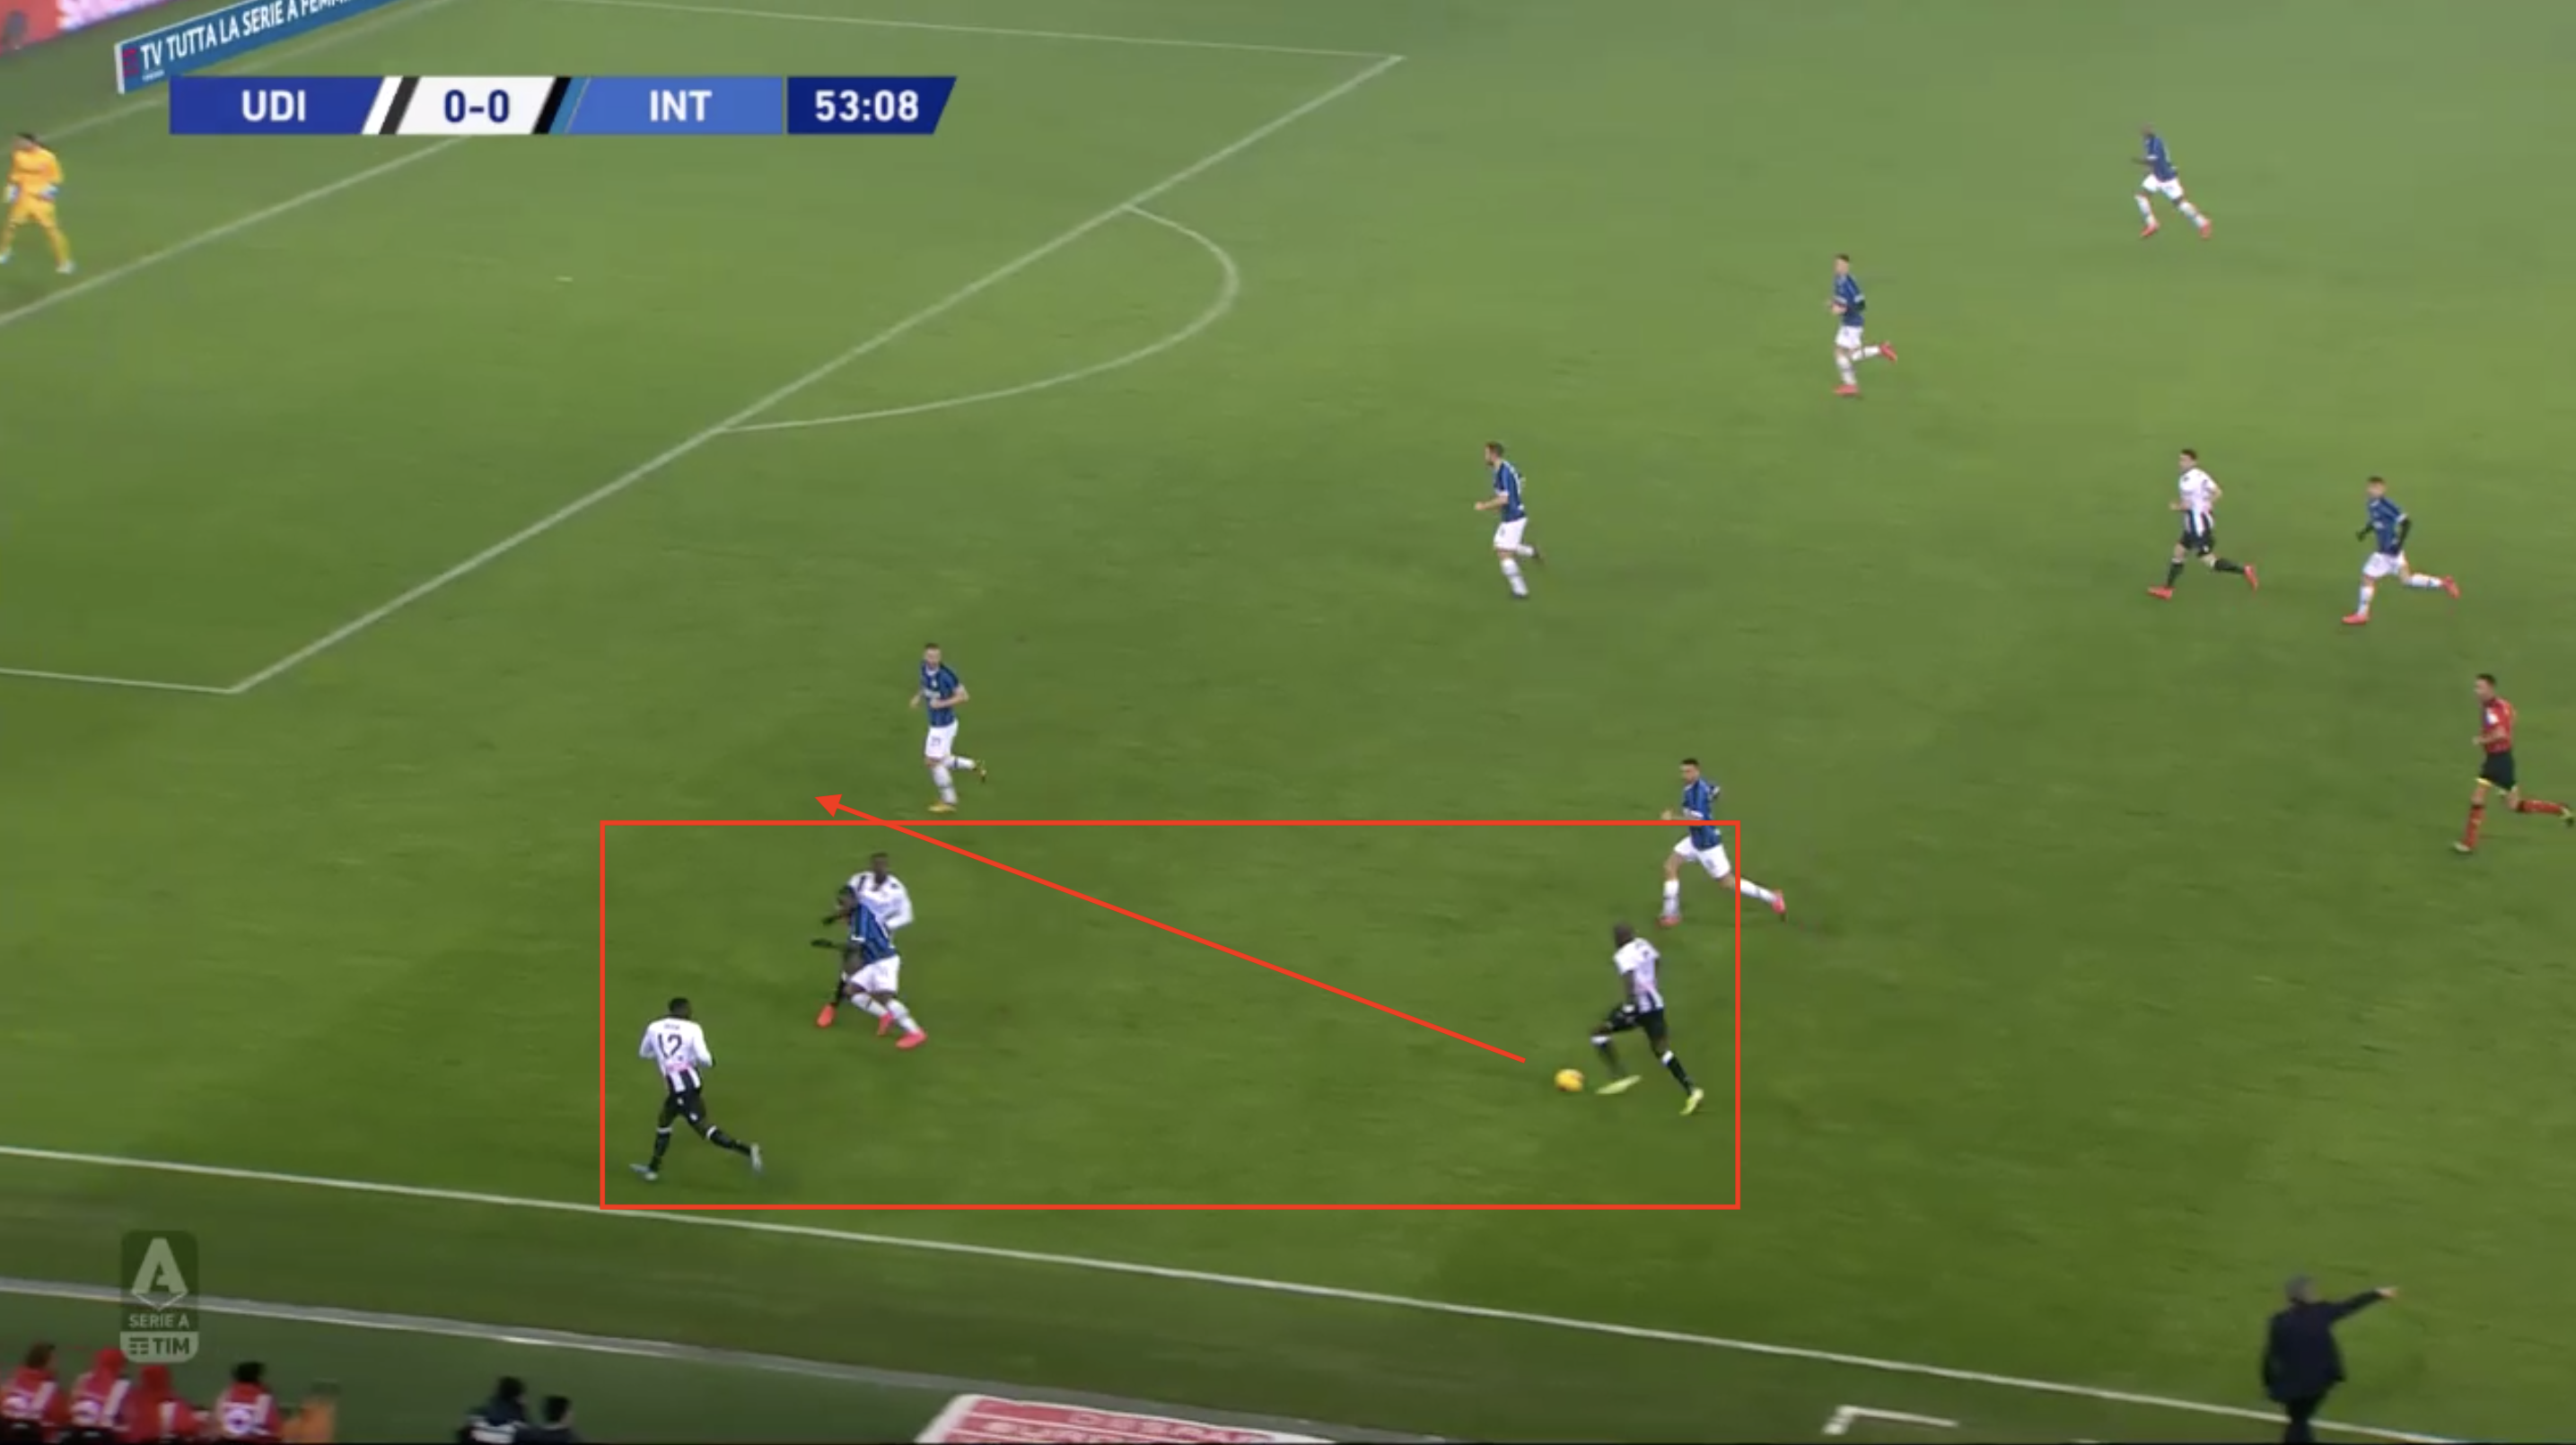 Serie A 2019/20: Inter vs Udinese – tactical analysis tactics